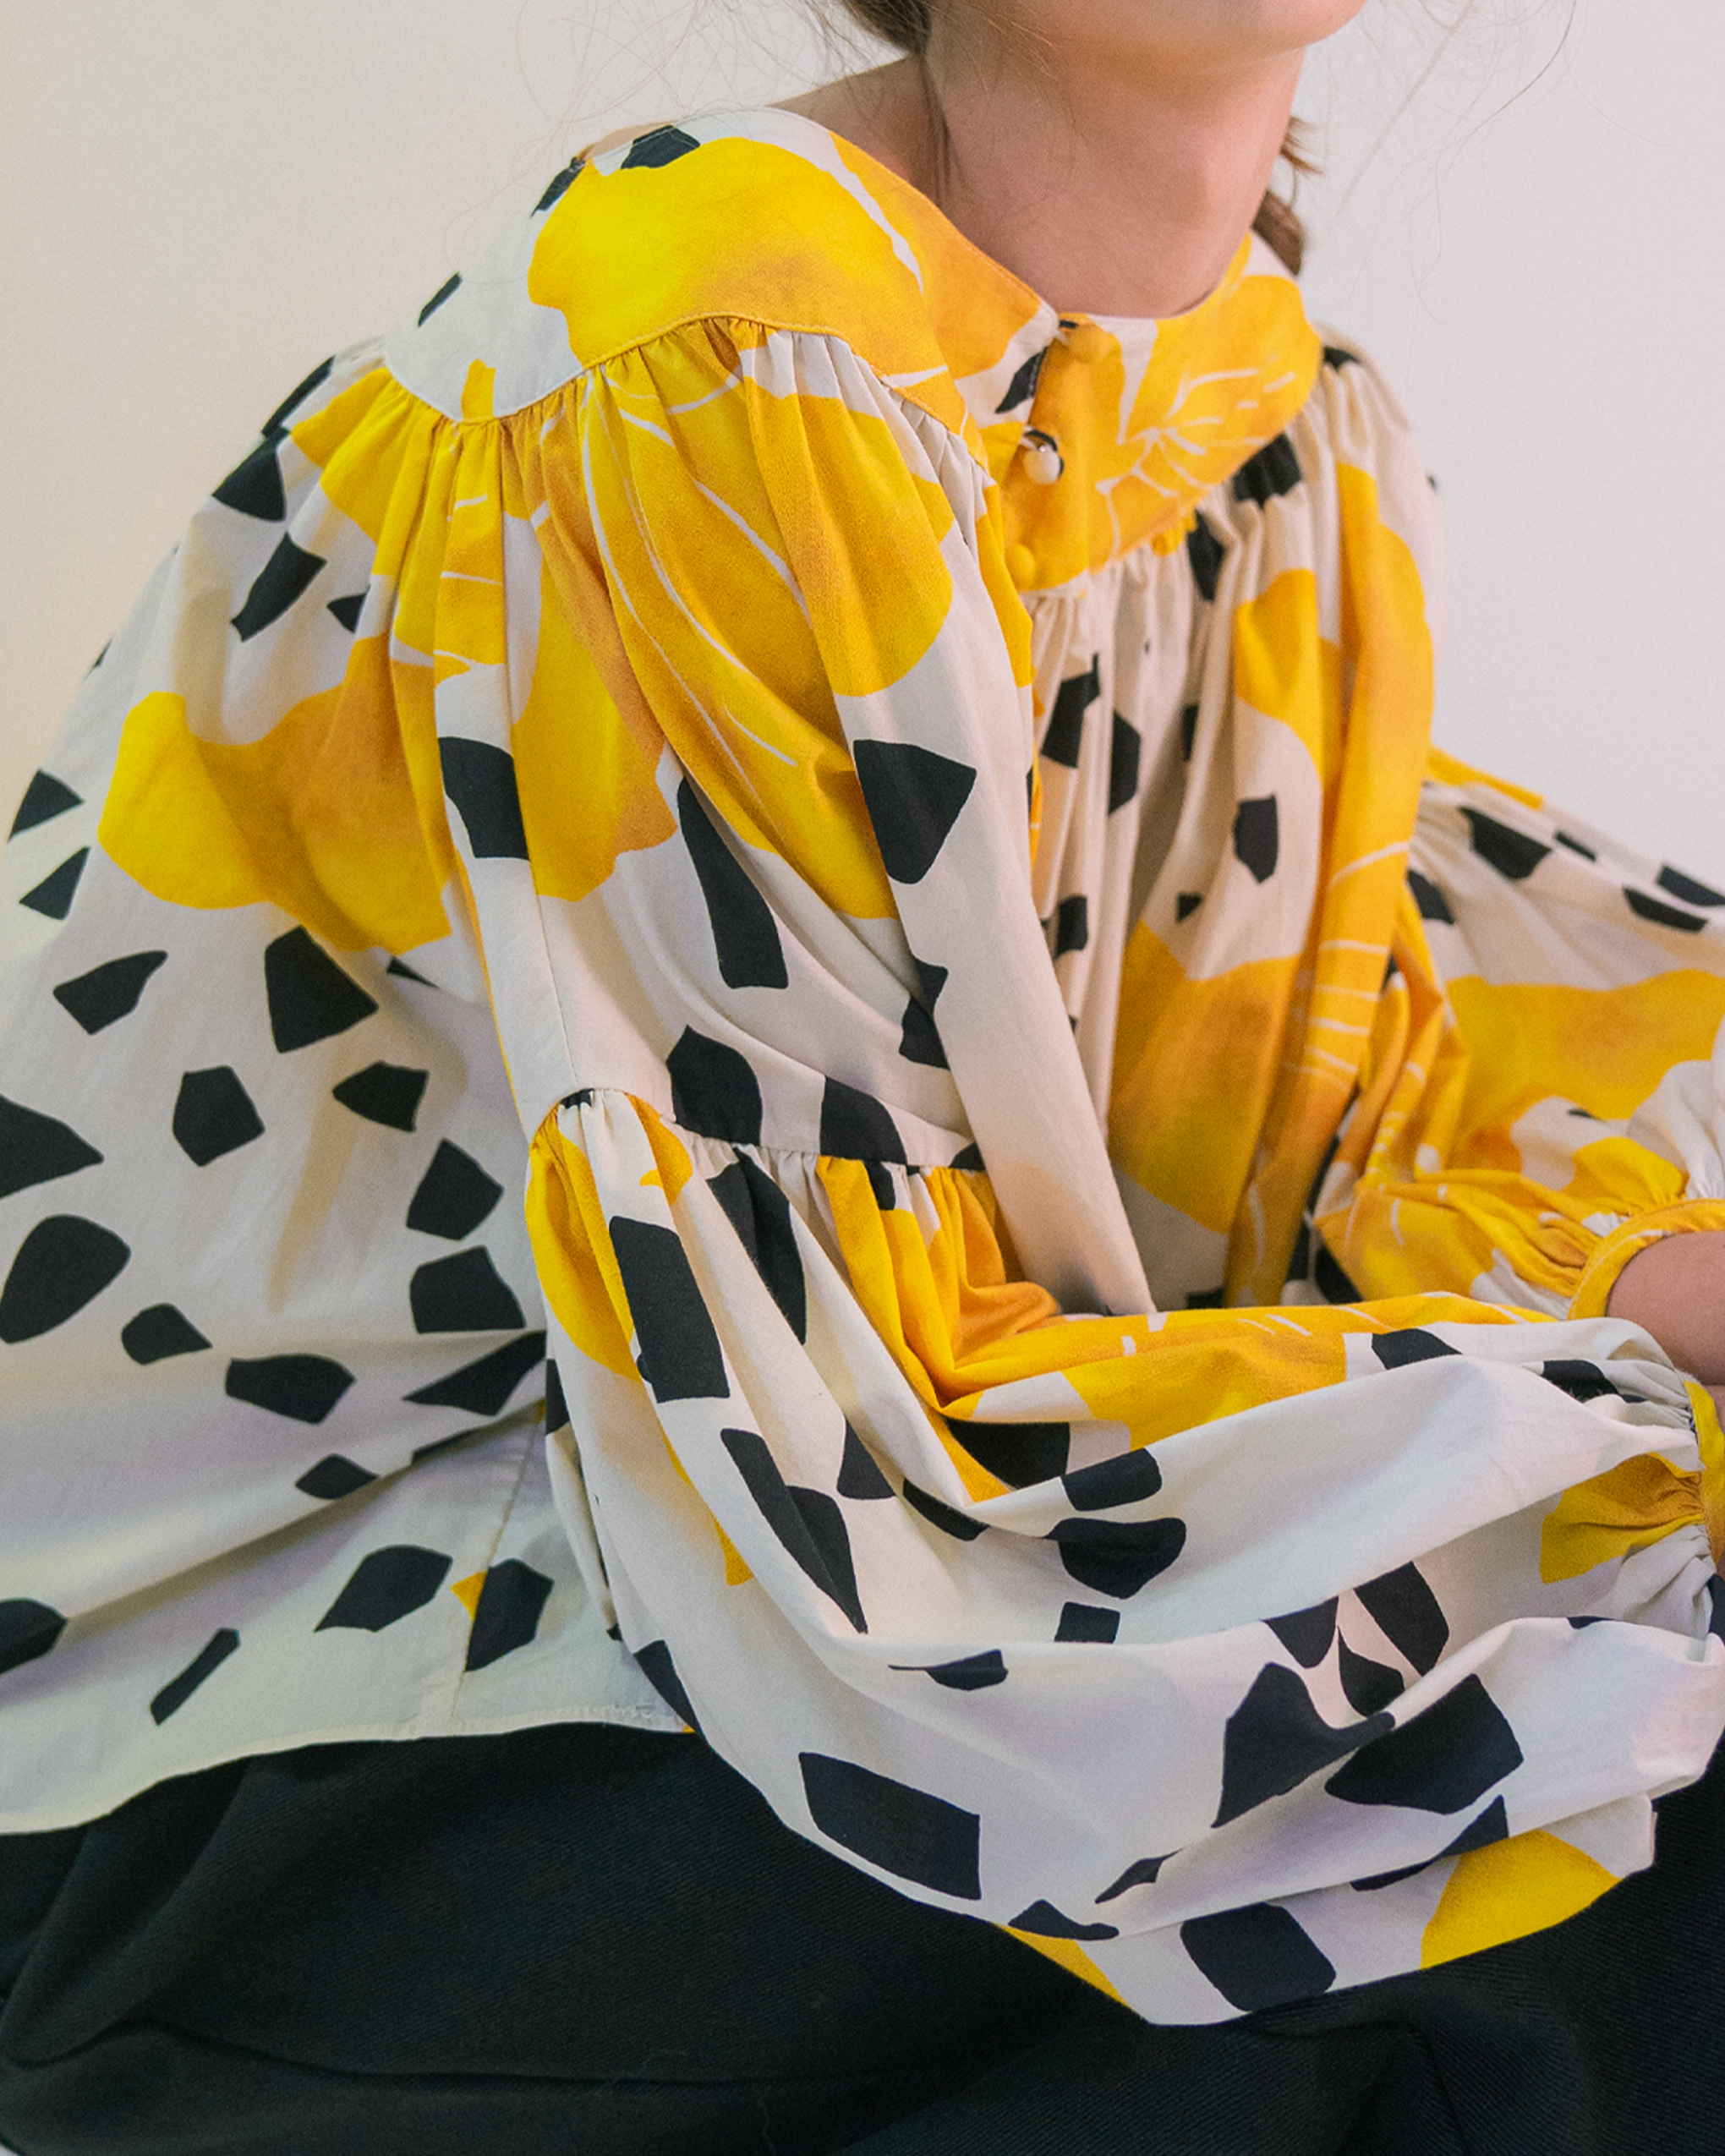 A woman is wearing yellow flower and black dot pattern blouse.